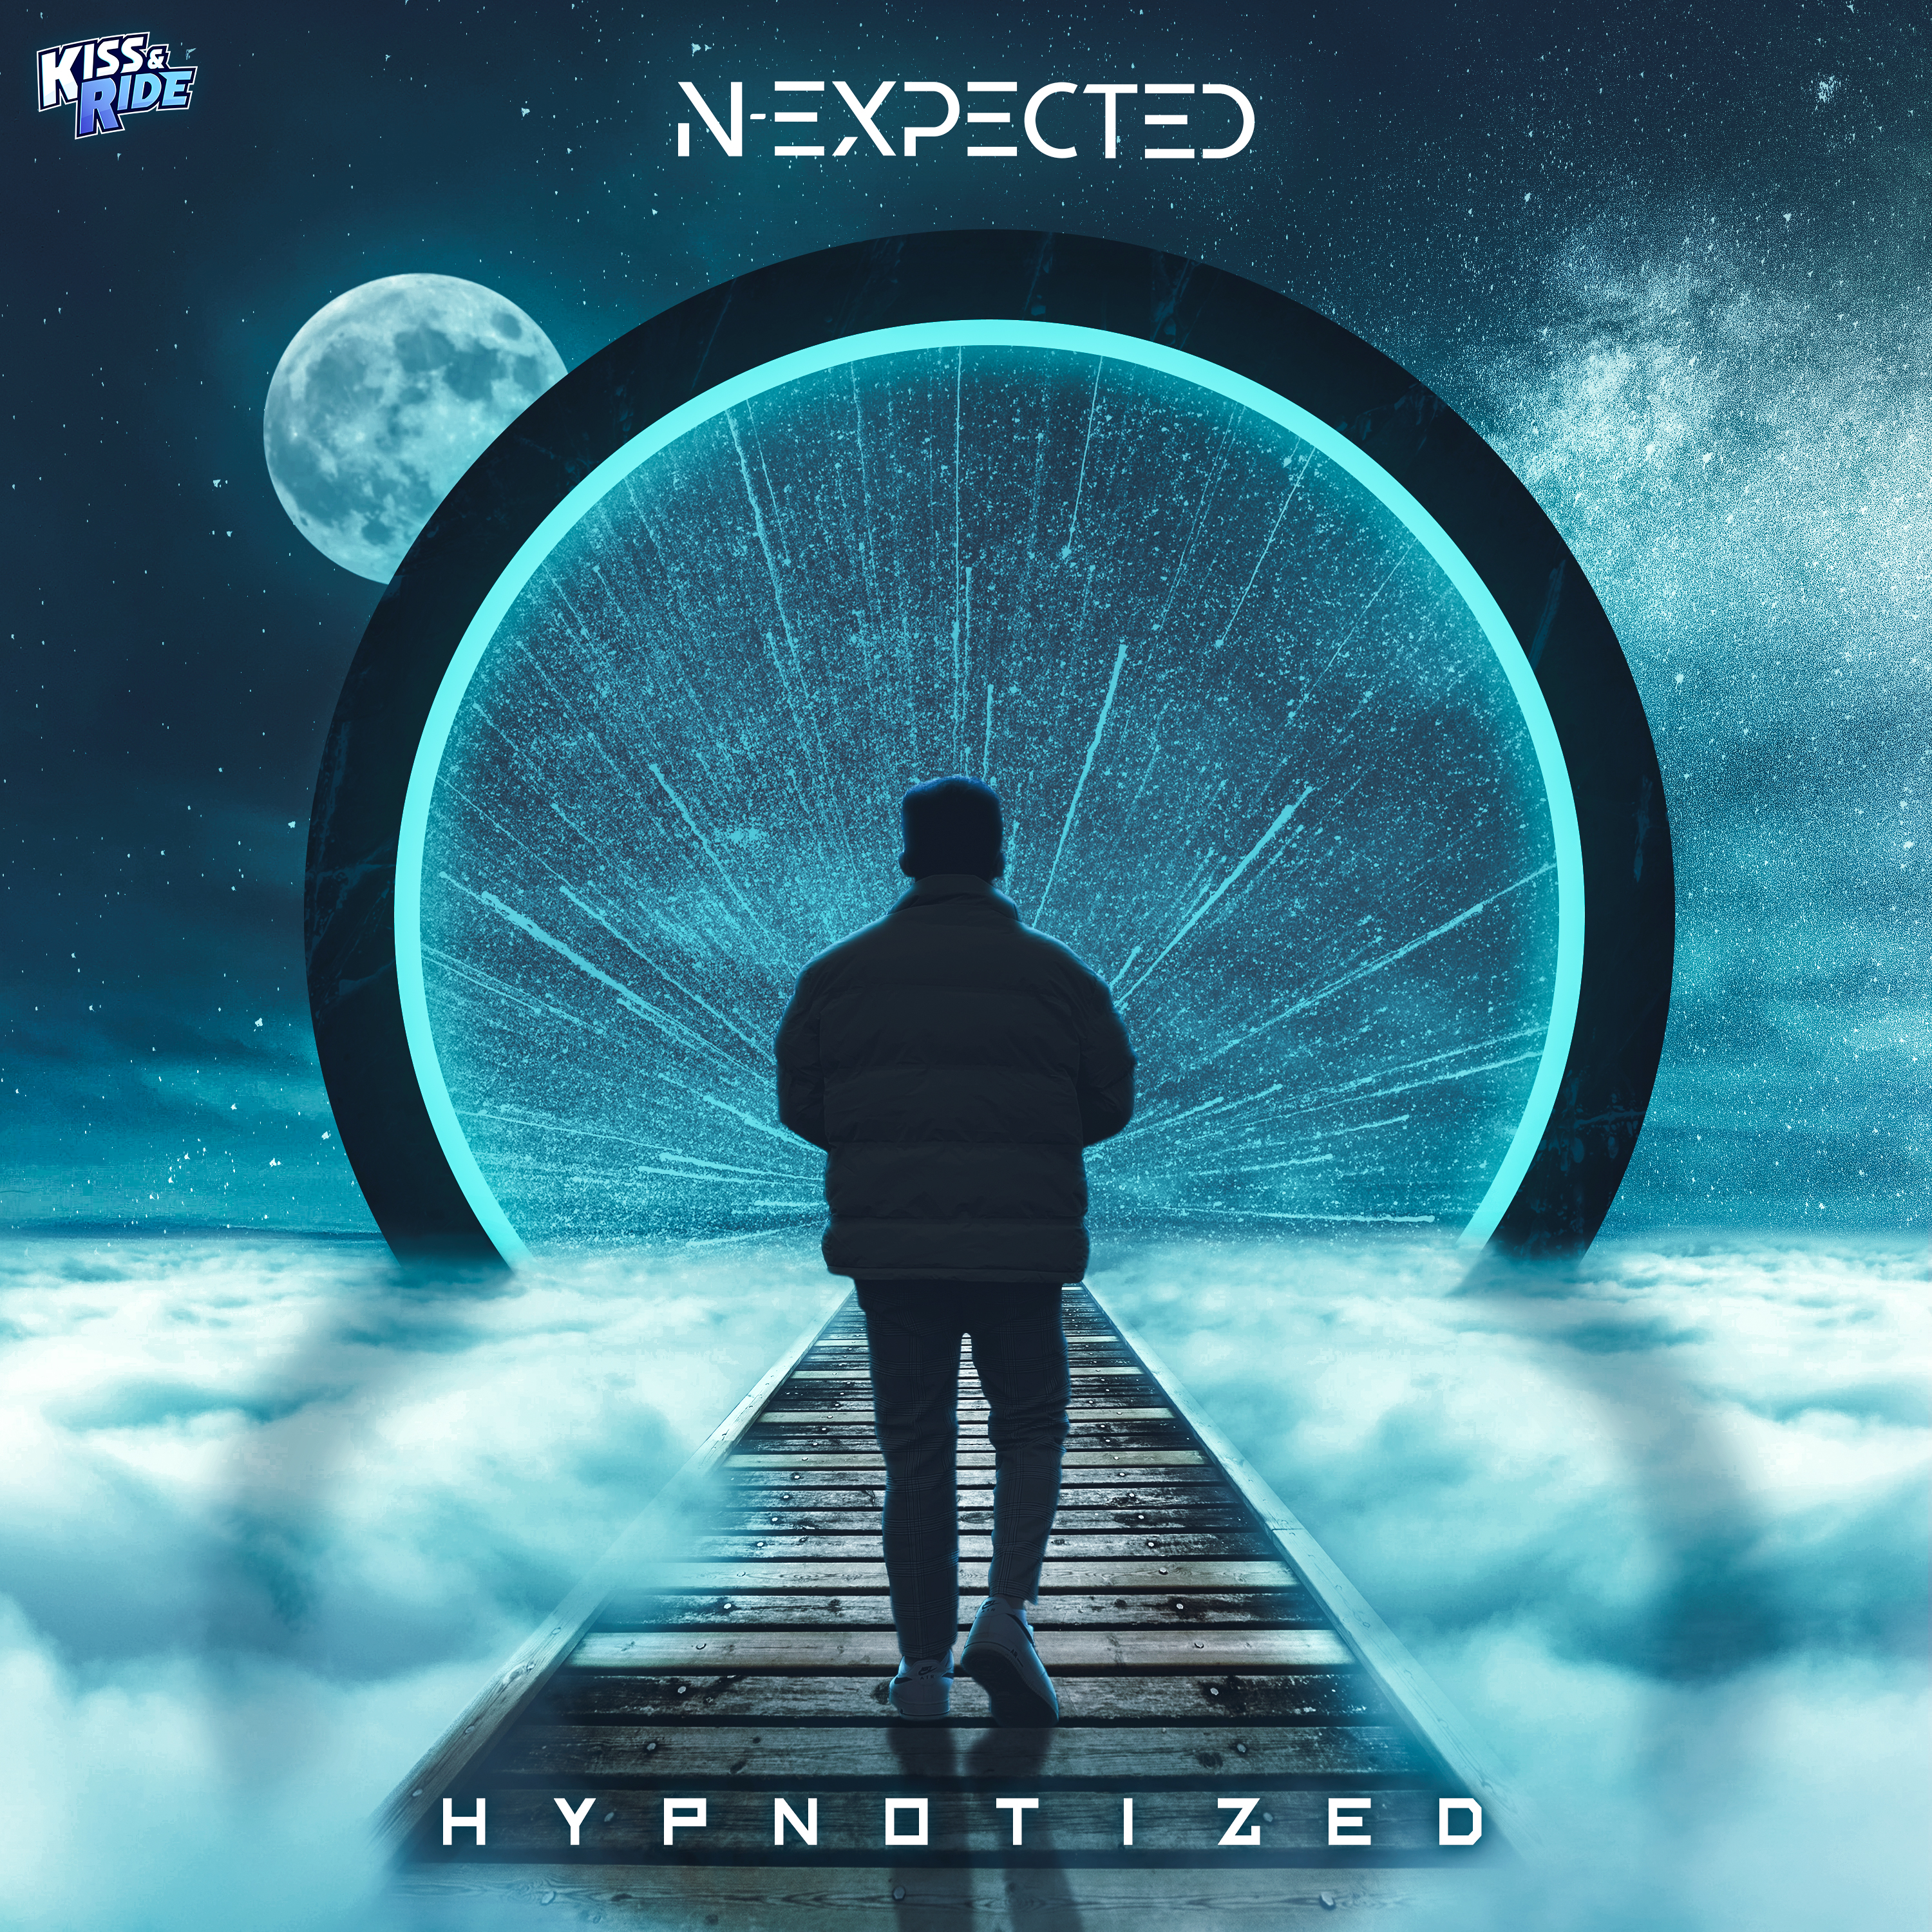 N-Expected - Hypnotized Image